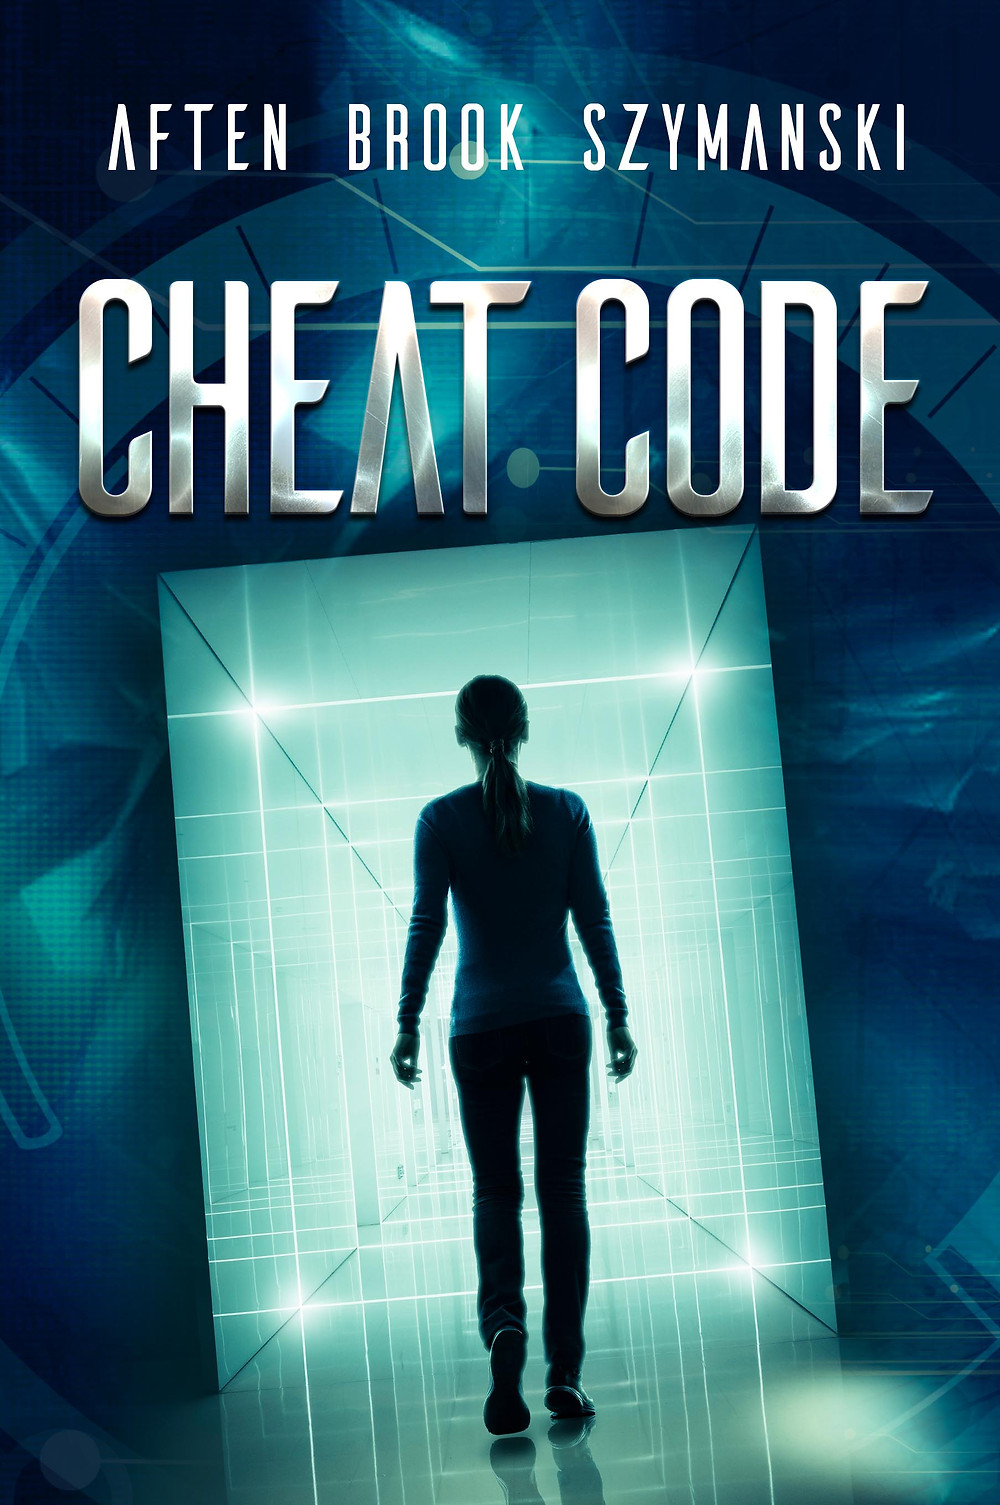 Cheat Code book cover